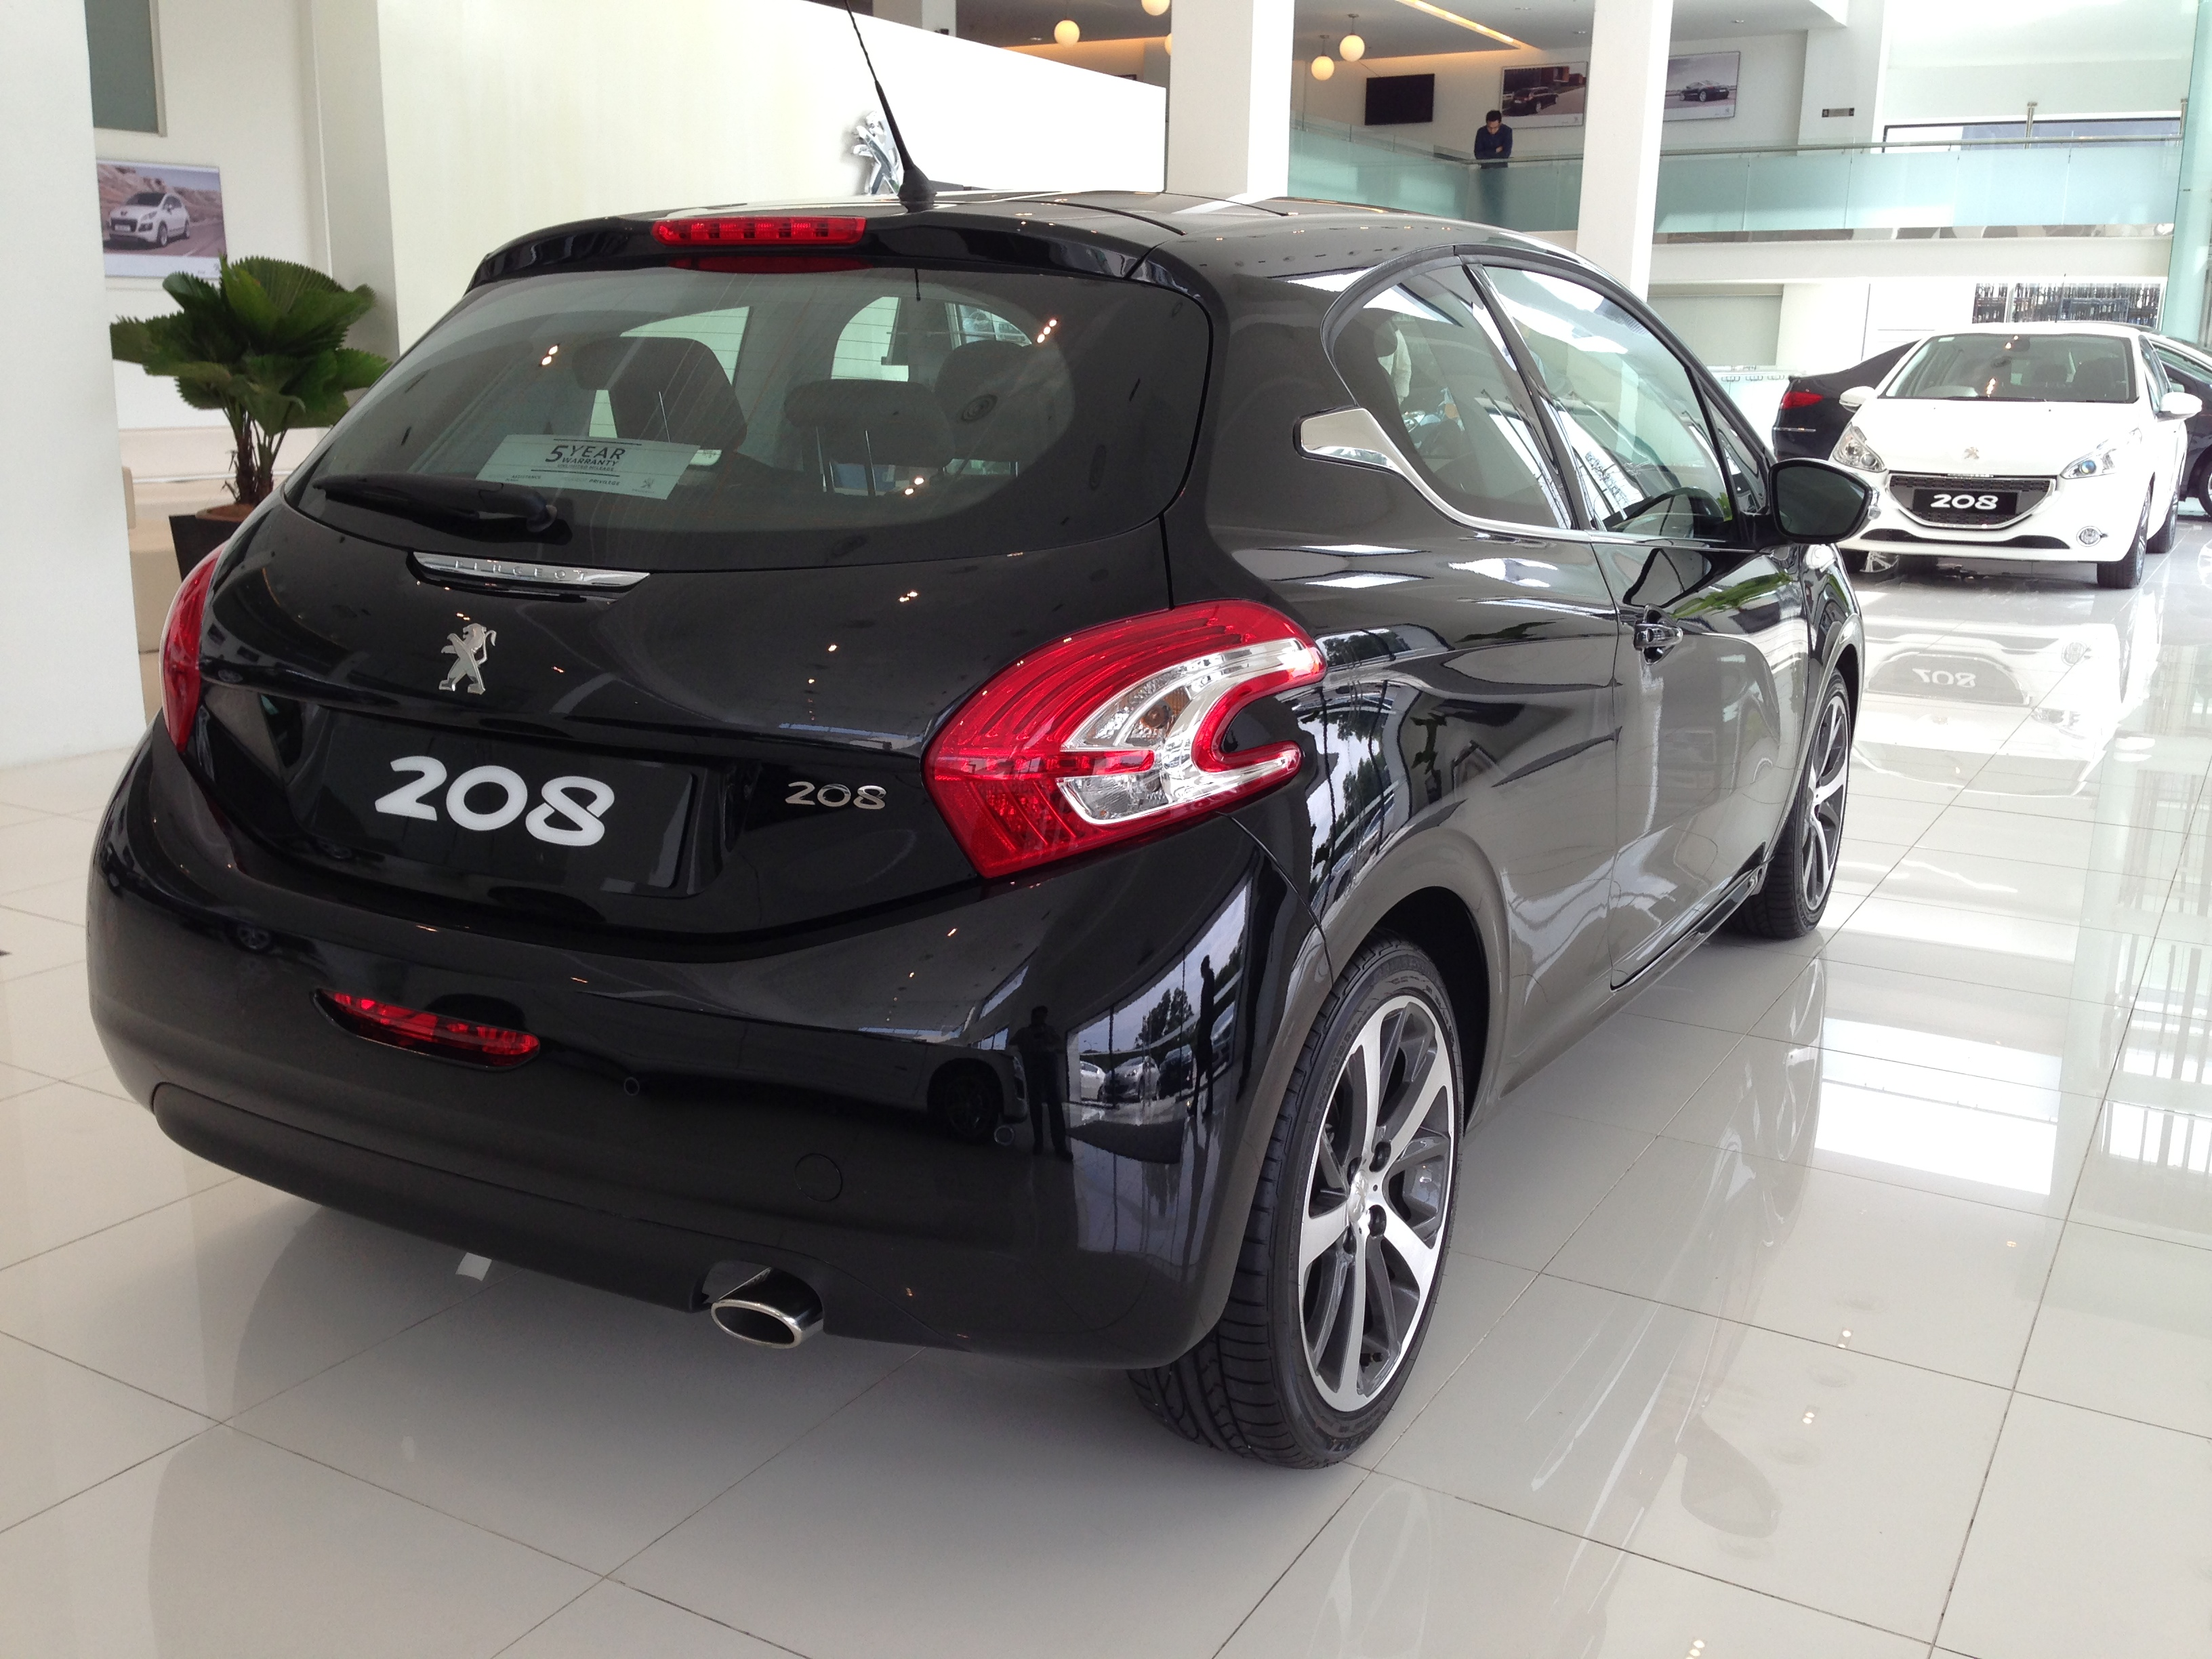 peugeot 208 on display specs unveiled via brochures image 167839. Black Bedroom Furniture Sets. Home Design Ideas